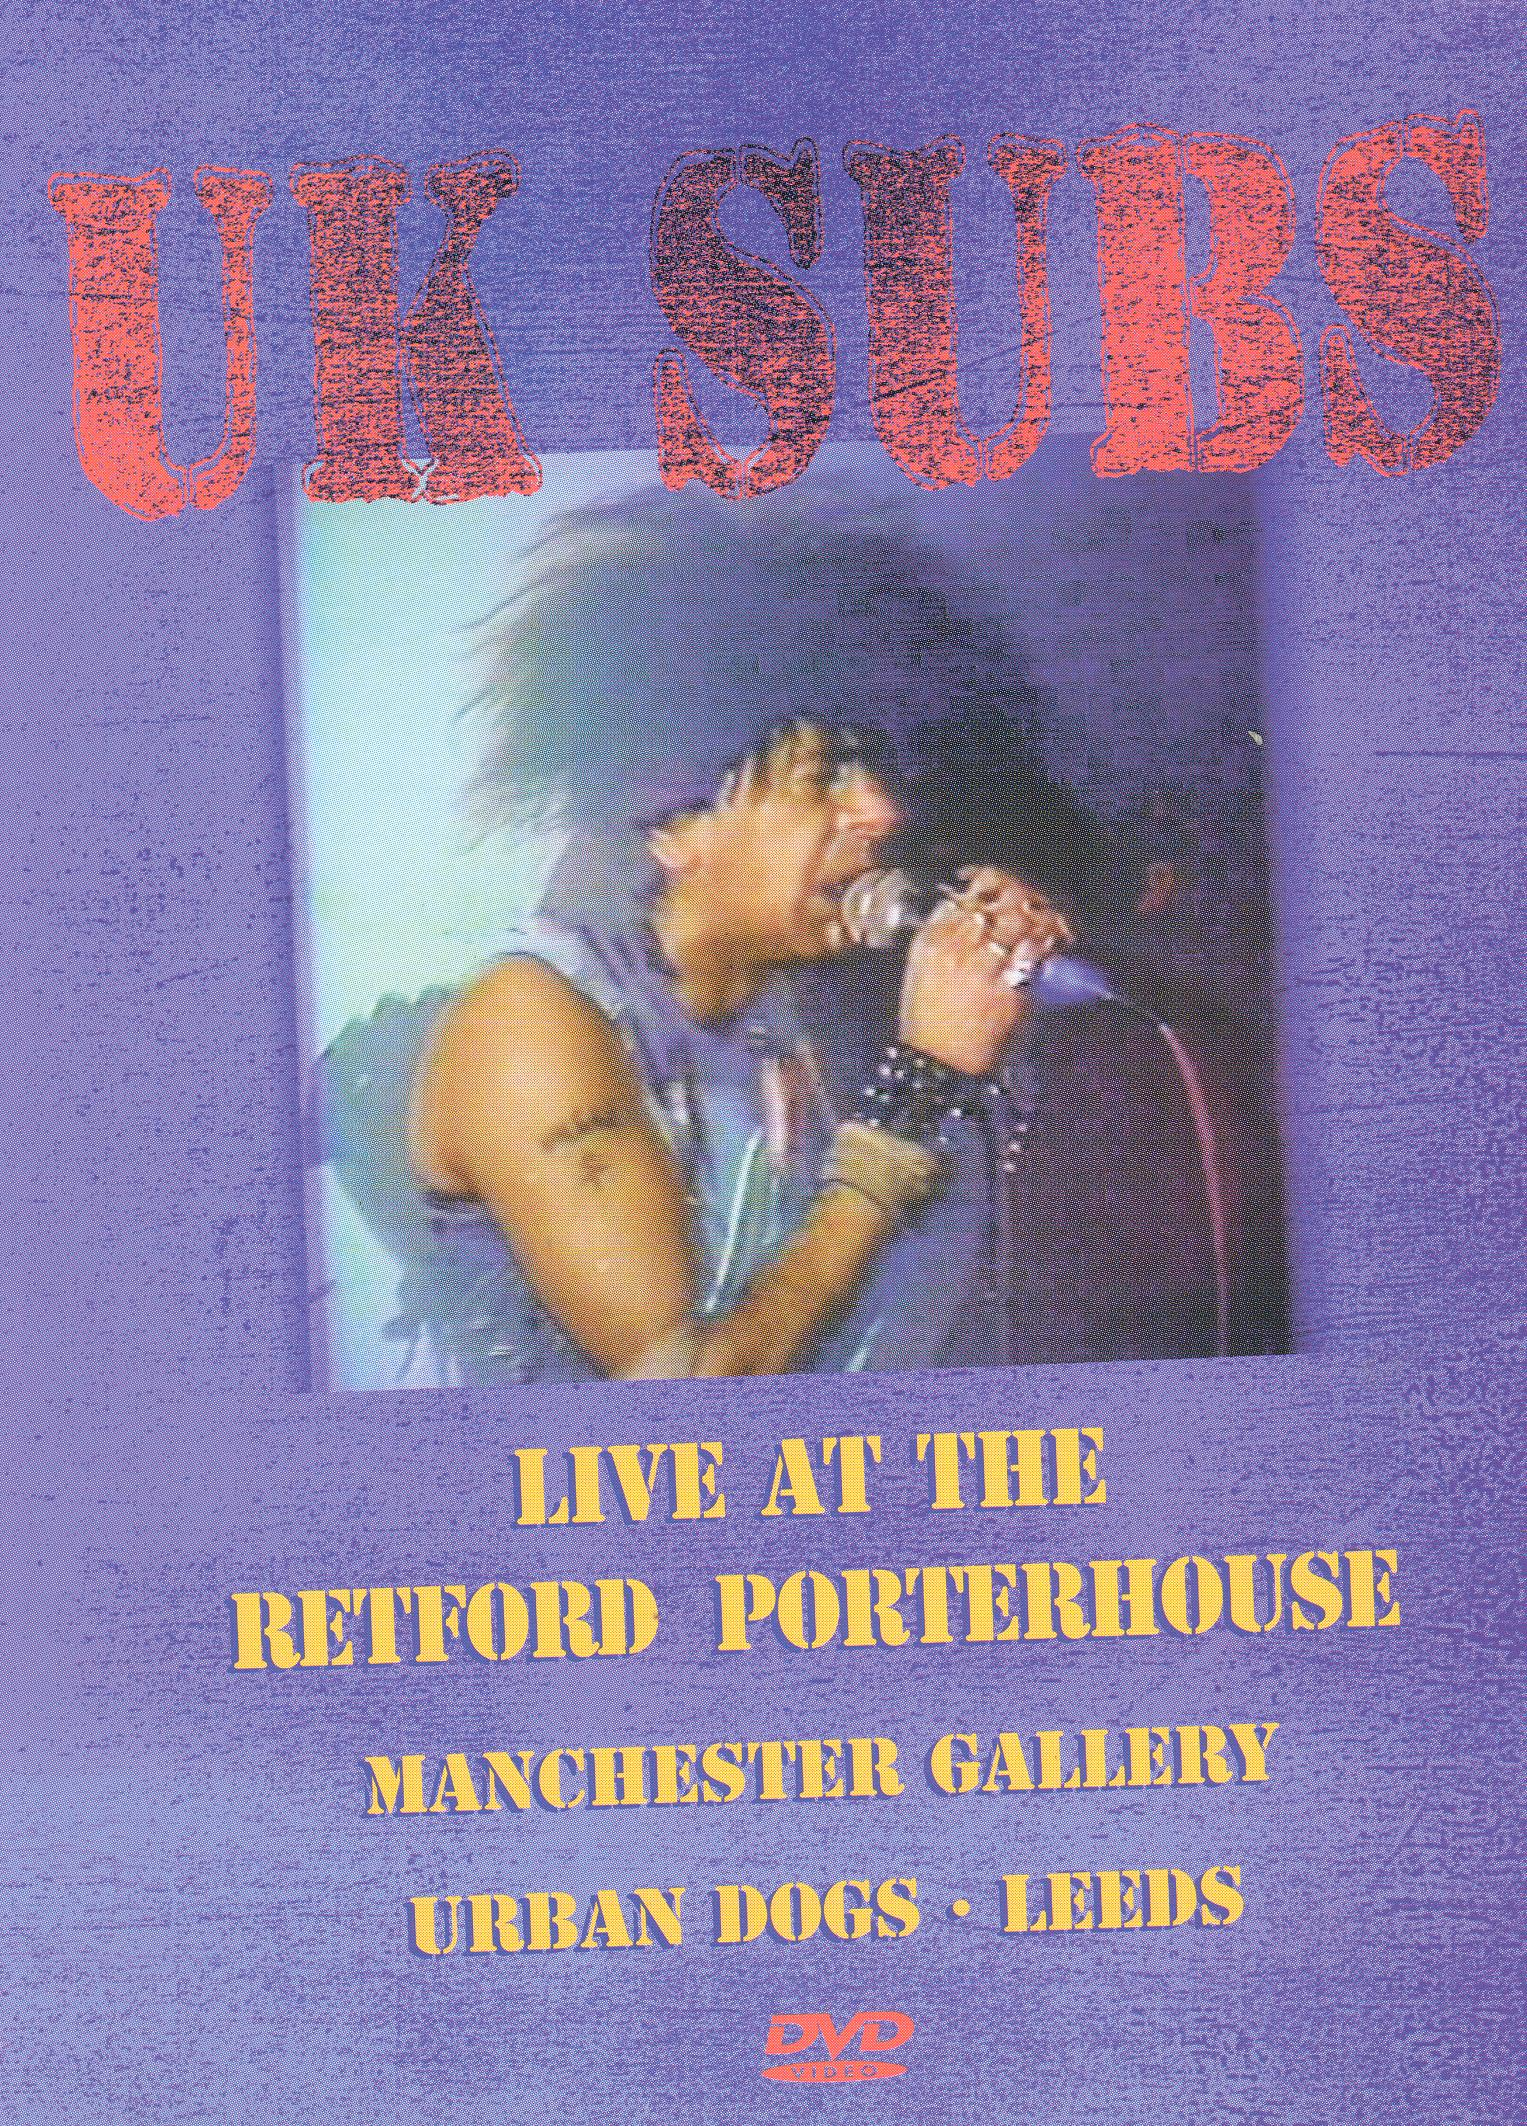 UK Subs: Live at the Retford Porterhouse